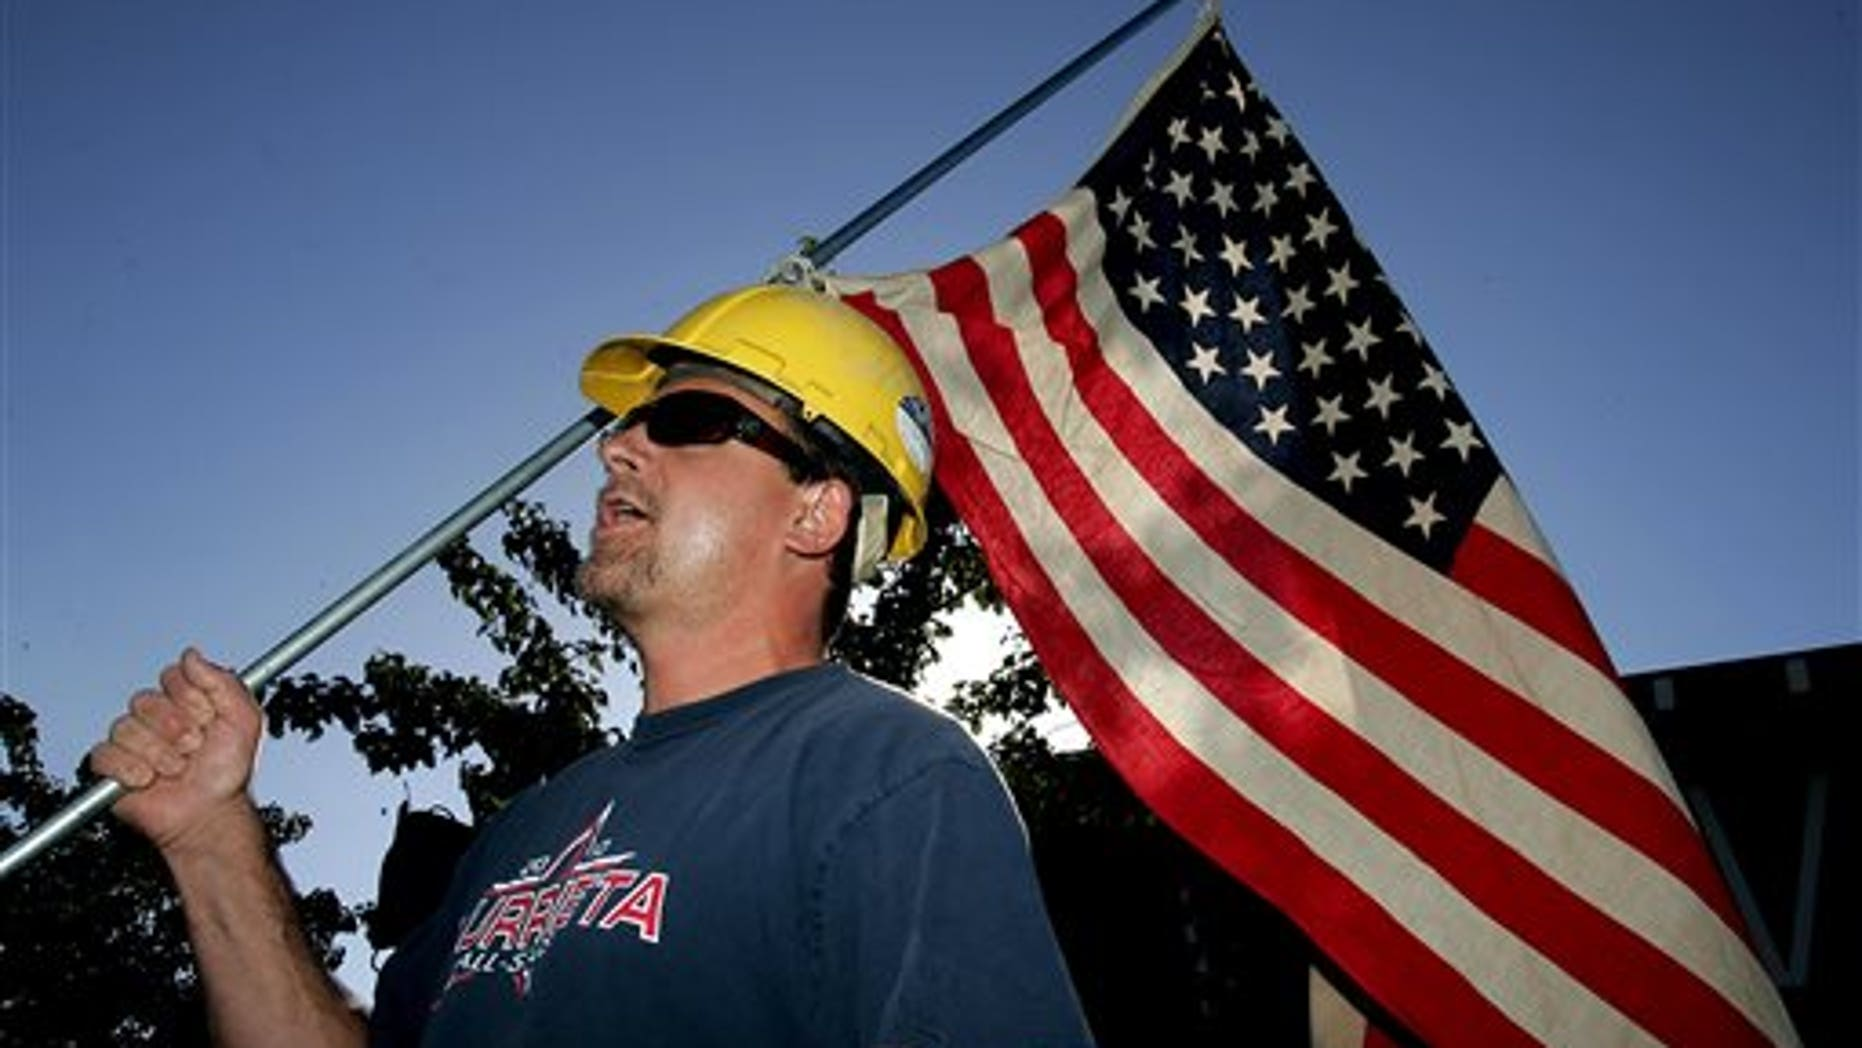 Paul Hathaway, of Murrieta, Calif., holds a U.S. flag as he shouts outside Murrieta Mesa High School in Murrieta, Calif., where city, Riverside County and federal officials spoke about a  plan to process immigrants detained in Texas at the Murrieta U.S. Border Patrol facility, Wednesday, July 2, 2014. (AP Photo/The Press-Enterprise, Terry Pierson)